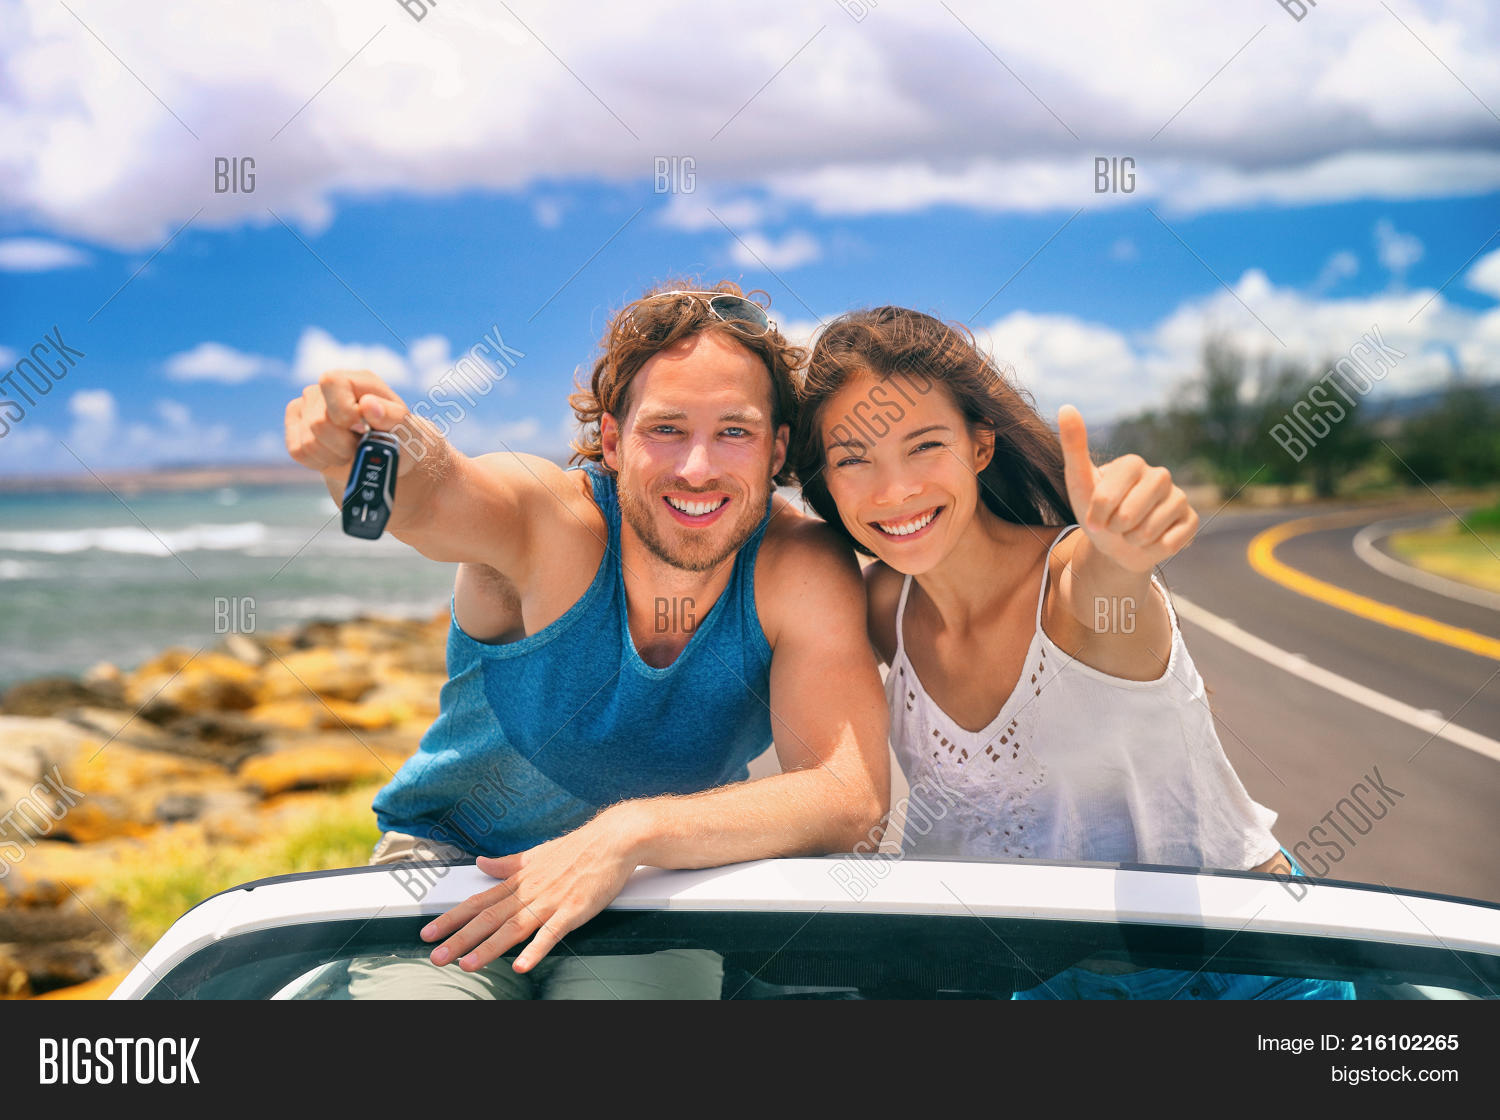 Trip Travel Road Trip Travel Image Photo Free Trial Bigstock